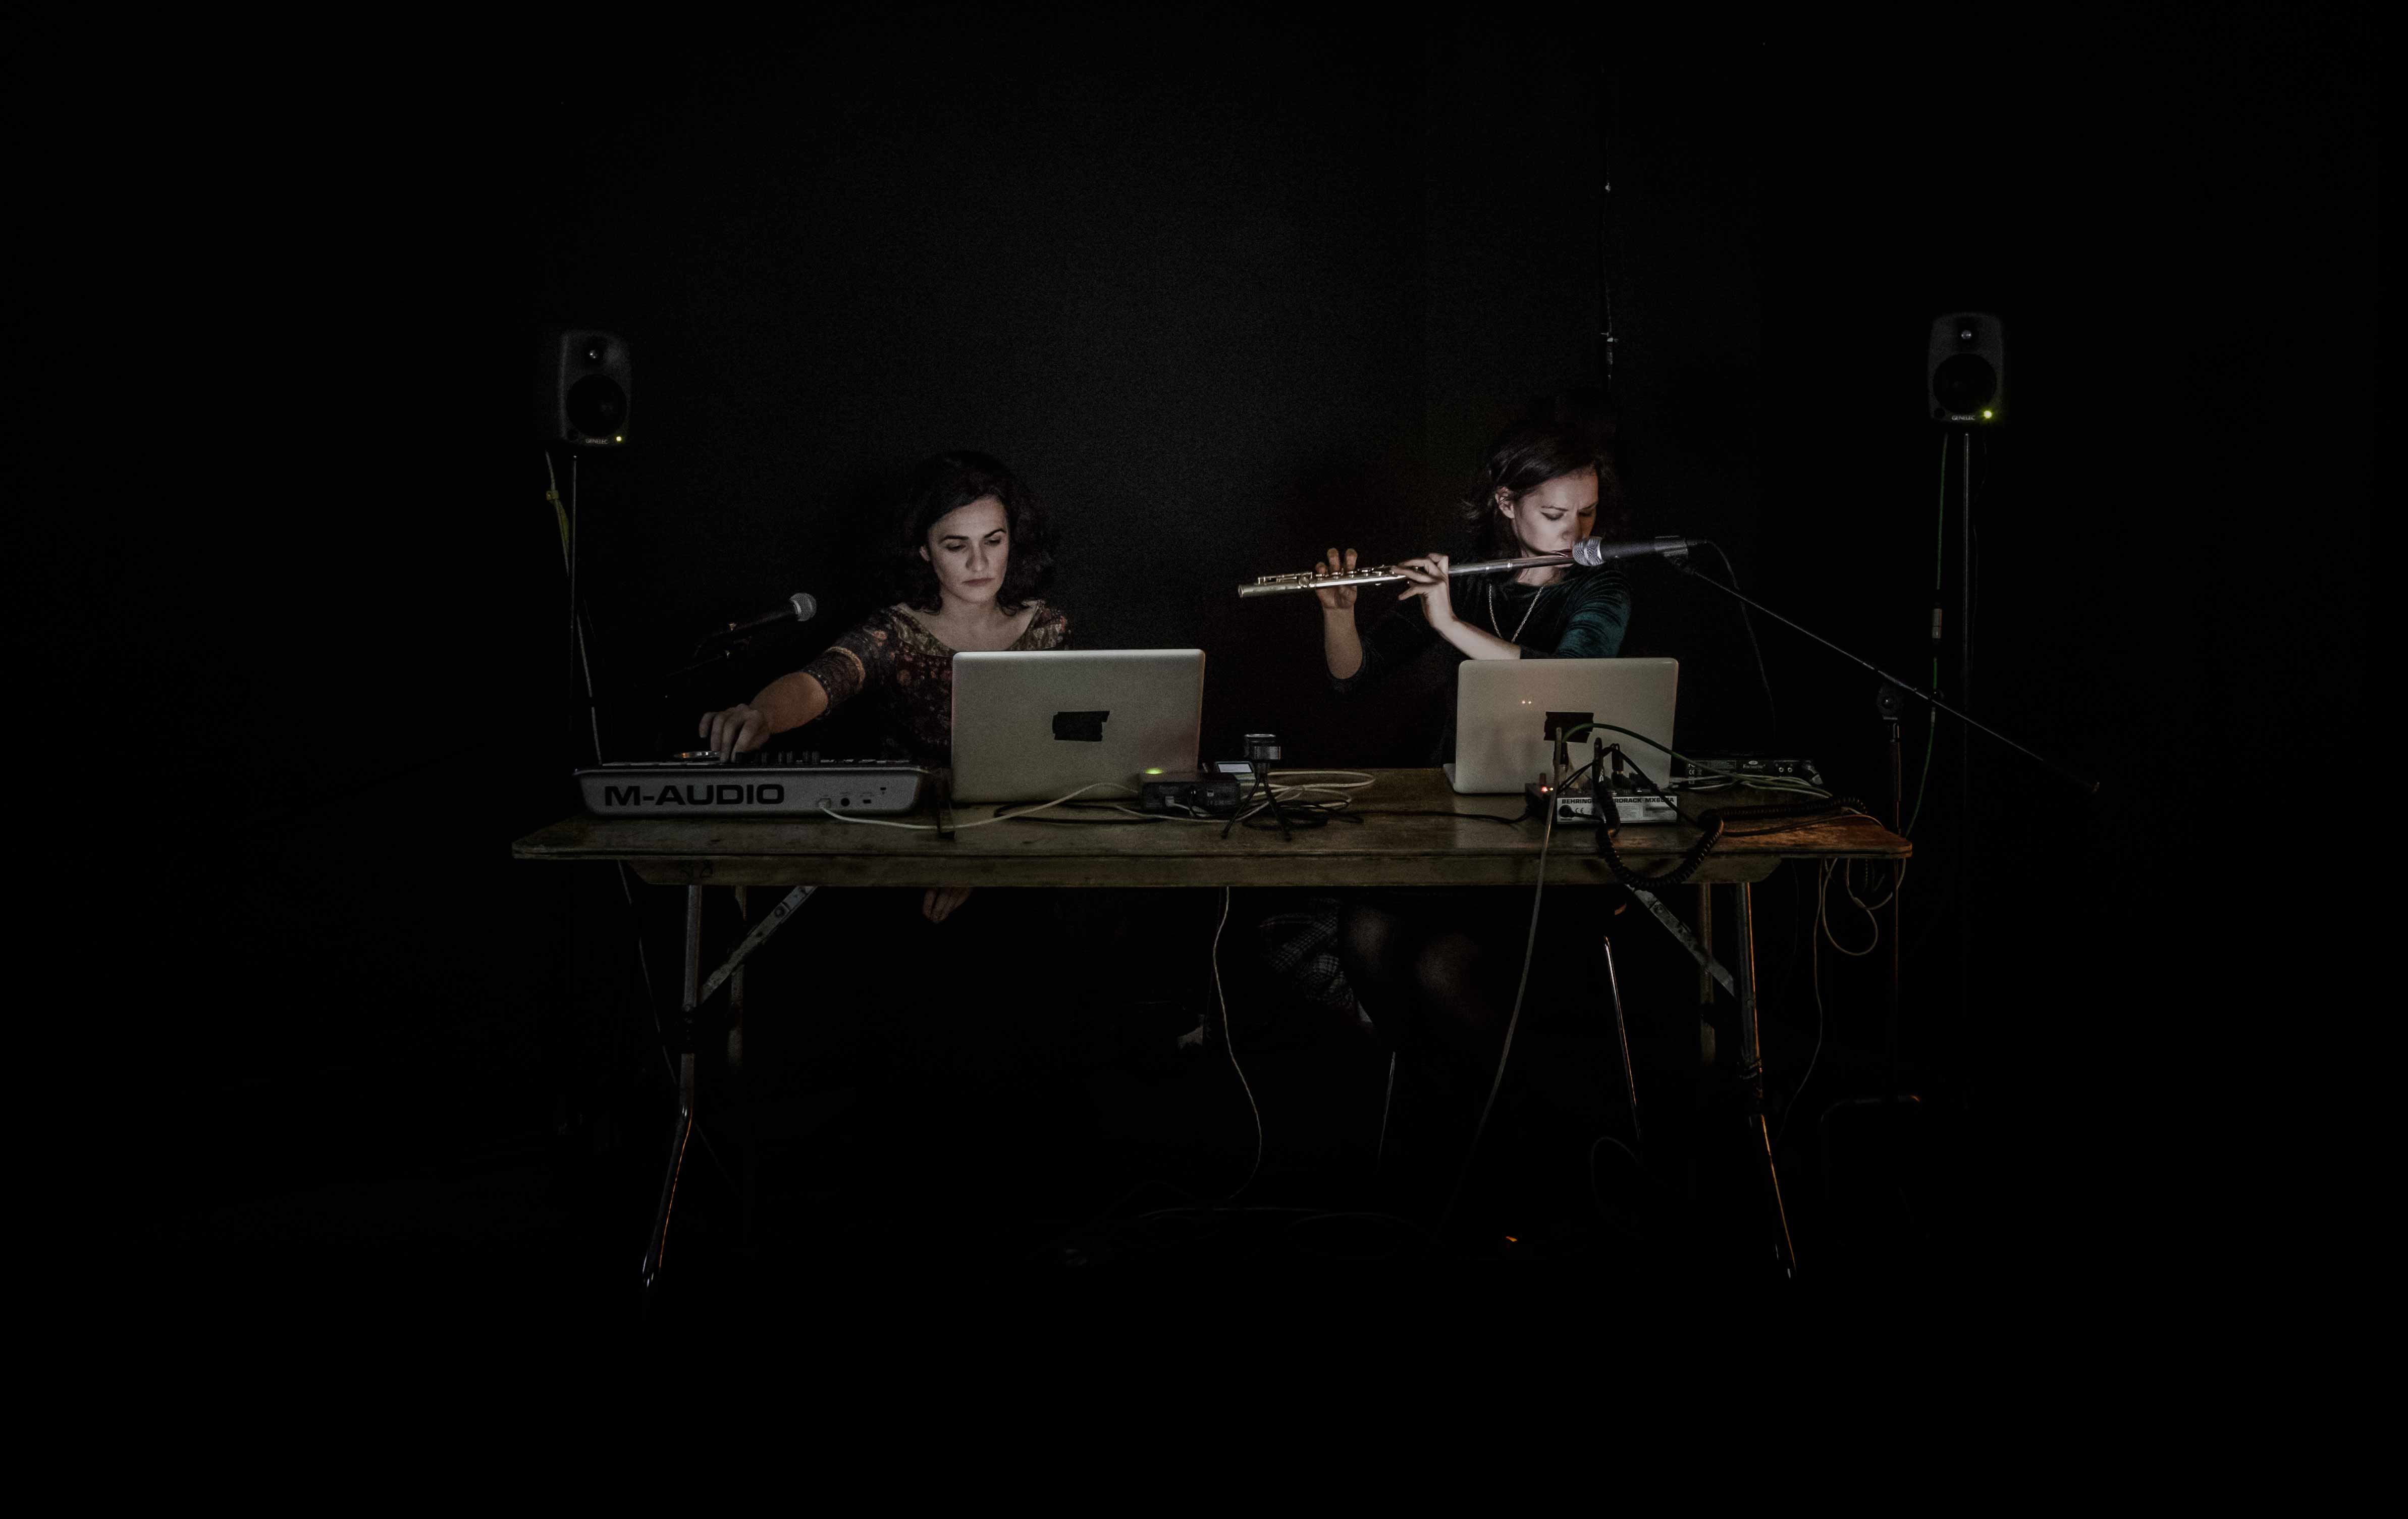 Reports to an Academy: Live electronic performance by Linda & Irene Buckley, RHA, Dublin, 2015. Photo: Mike Hannon.